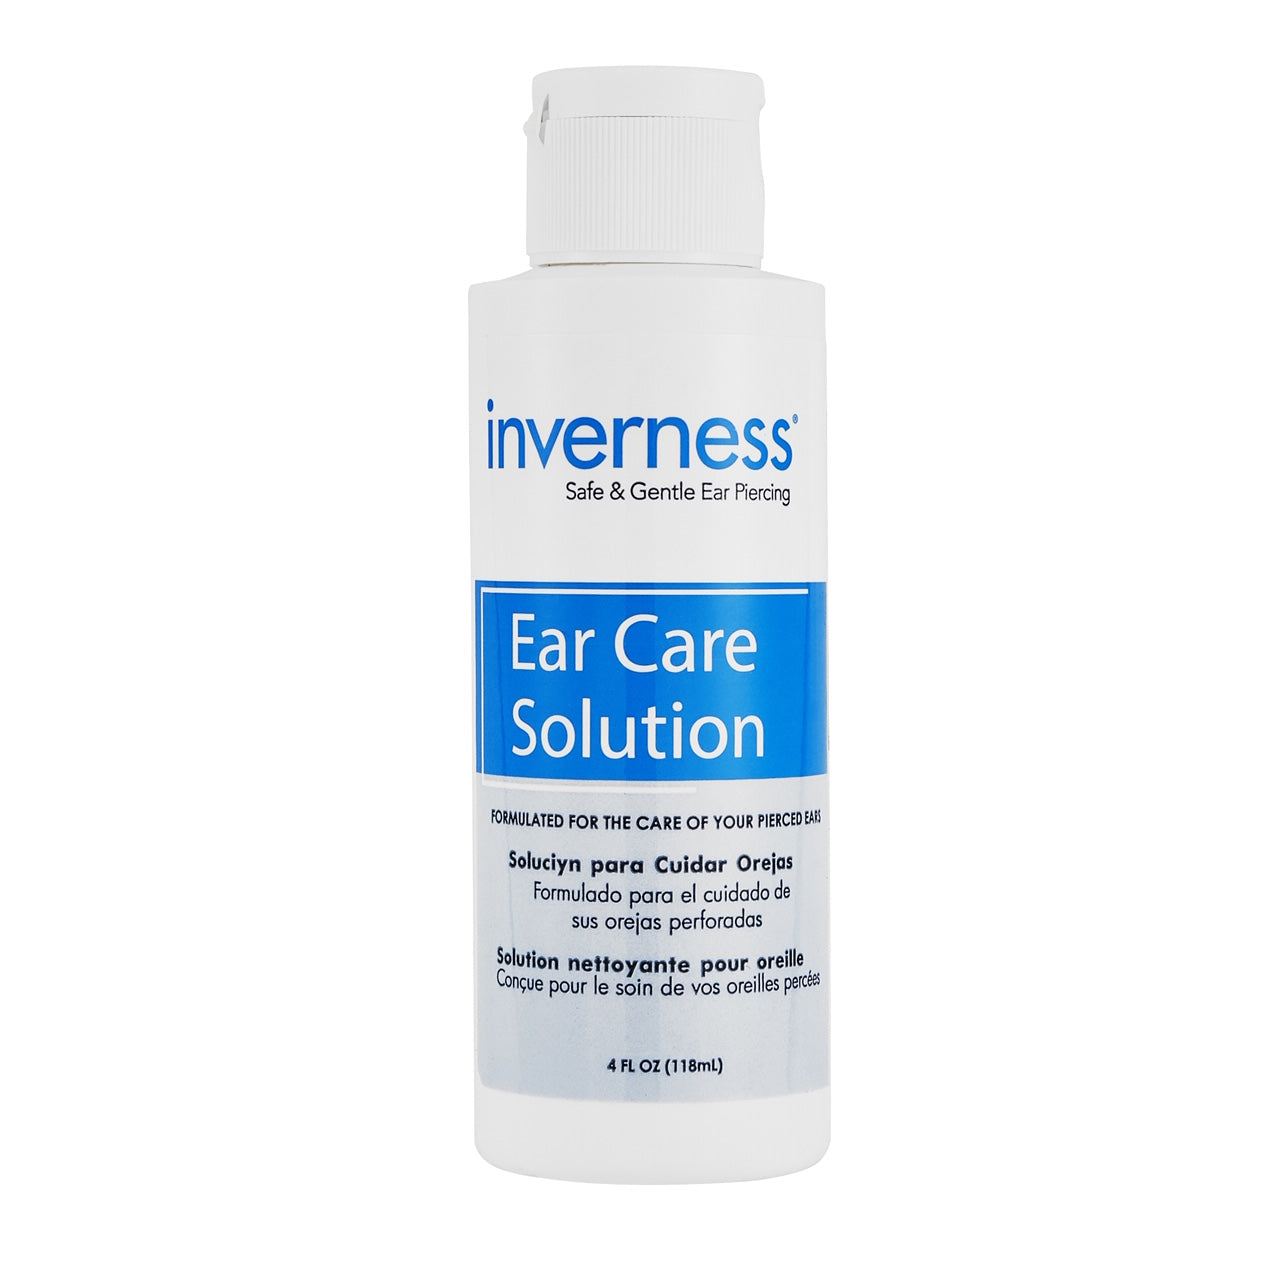 Inverness® Ear Care Solution